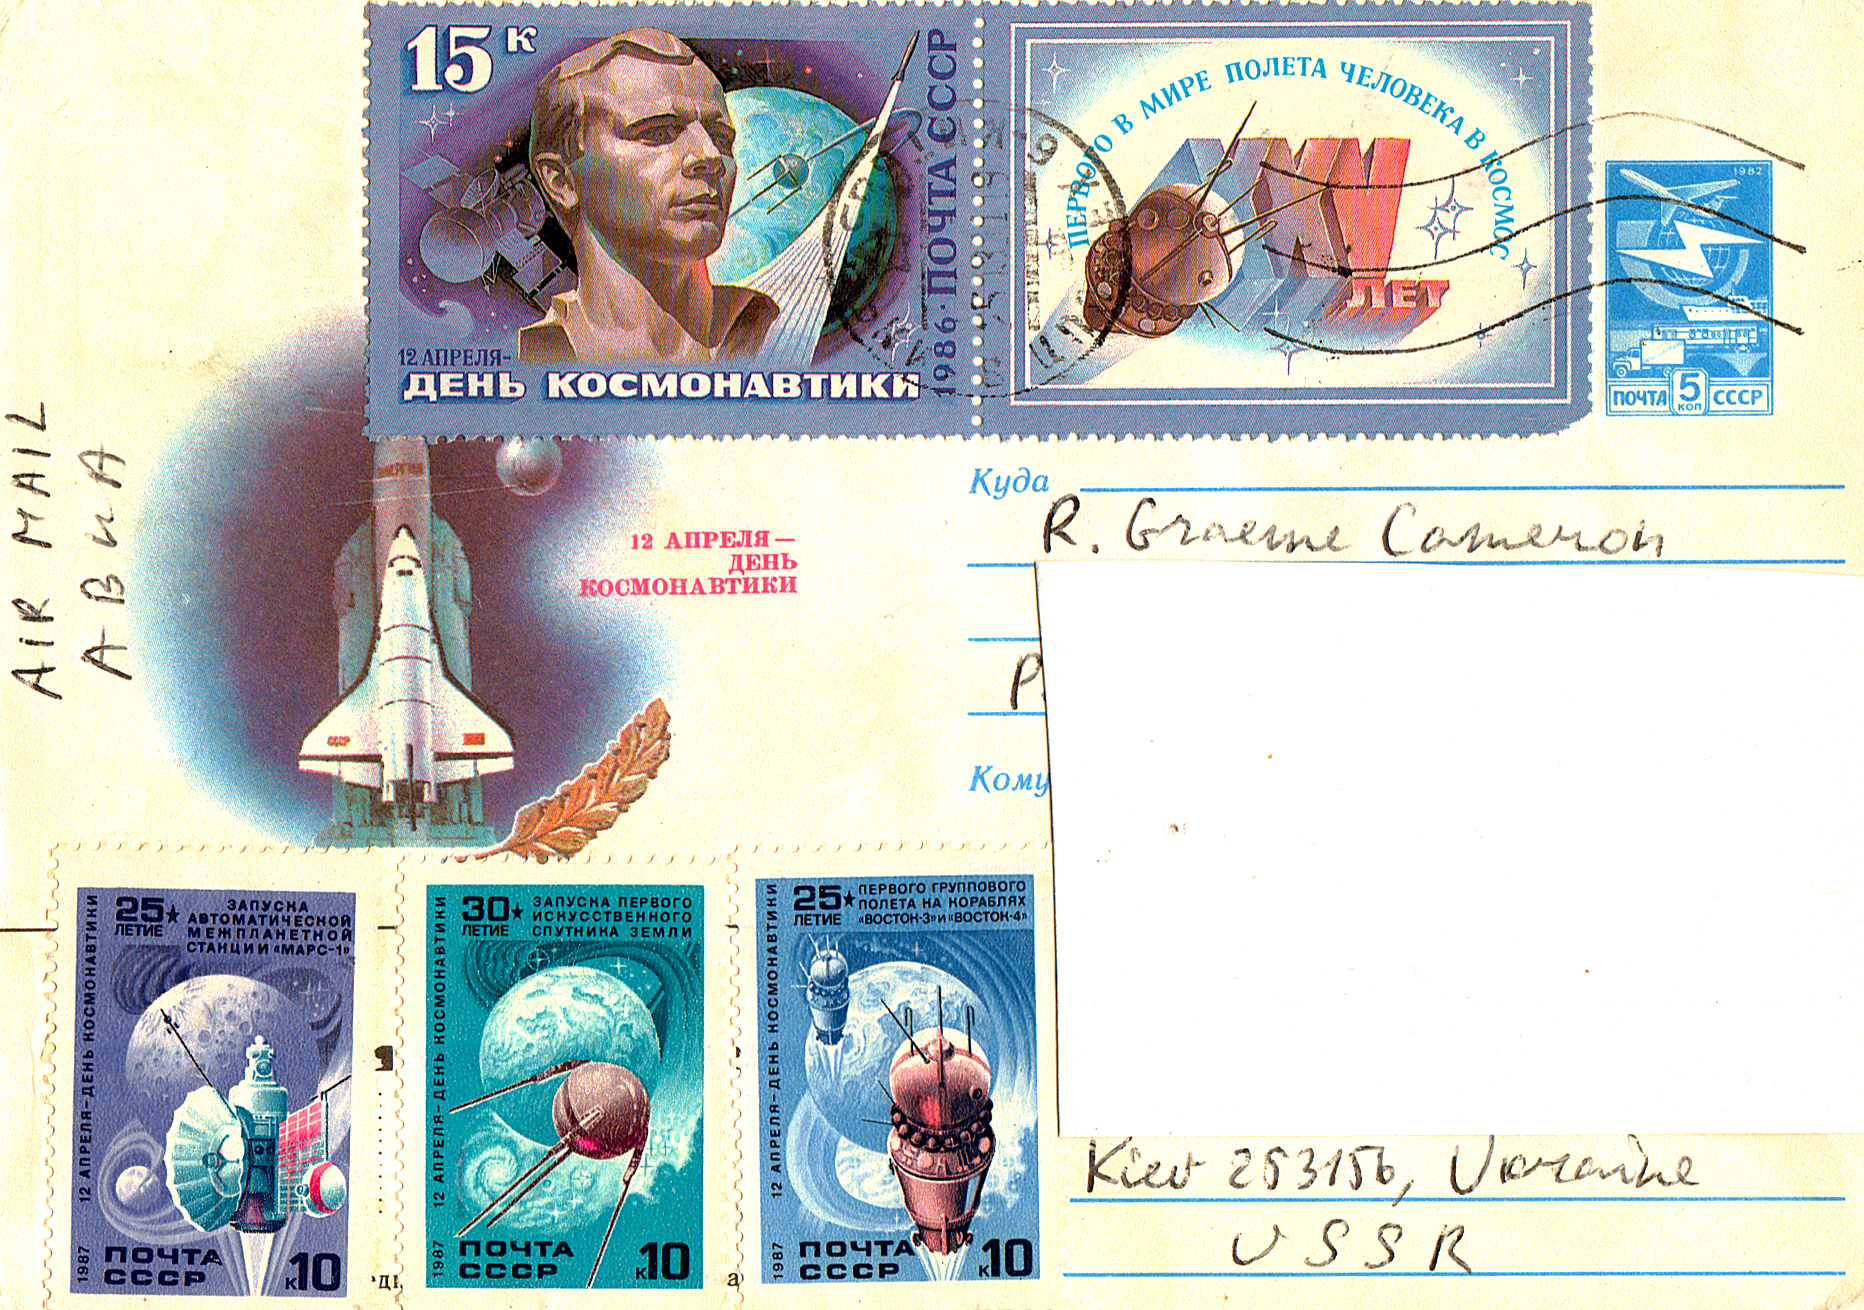 RG Cameron March 28 illo #3 'Space Stamps'